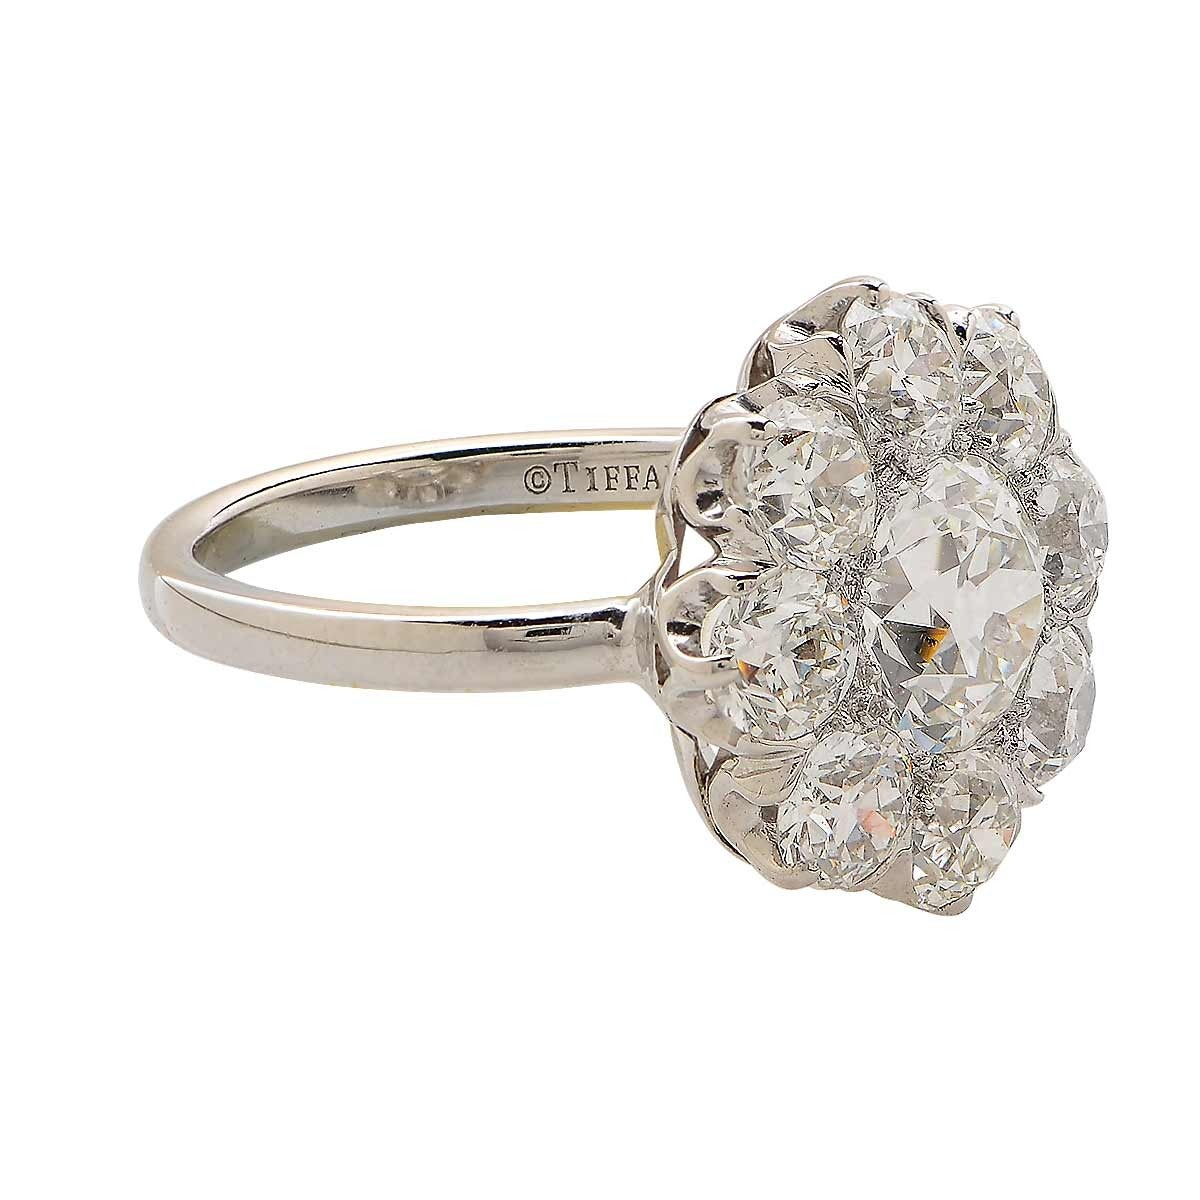 Tiffany and Co 3 65 Carat Diamond Cluster Ring at 1stdibs